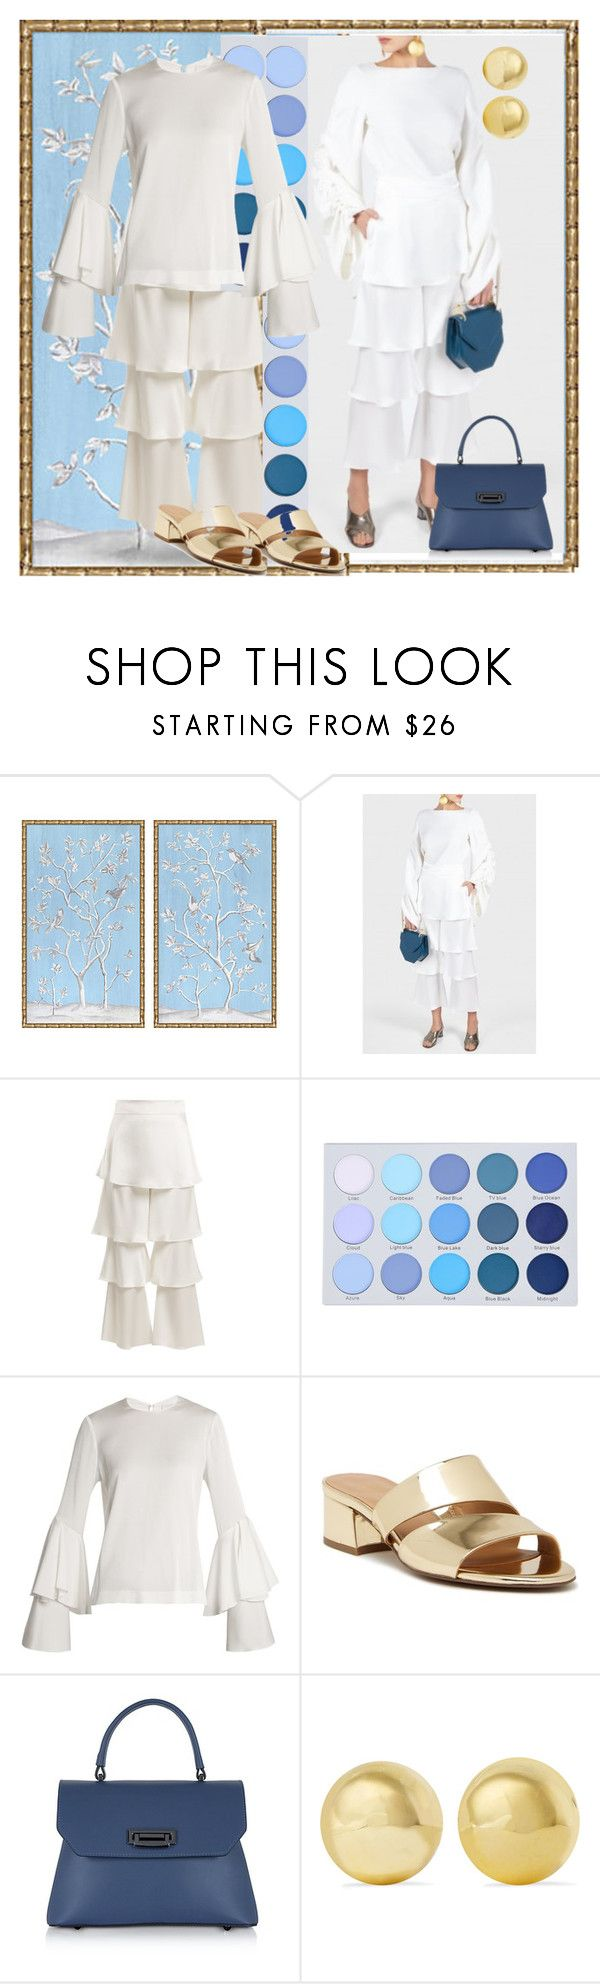 """Untitled #628"" by cigoehring ❤ liked on Polyvore featuring Osman, Galvan, Franco Sarto, Le Parmentier and Kenneth Jay Lane"